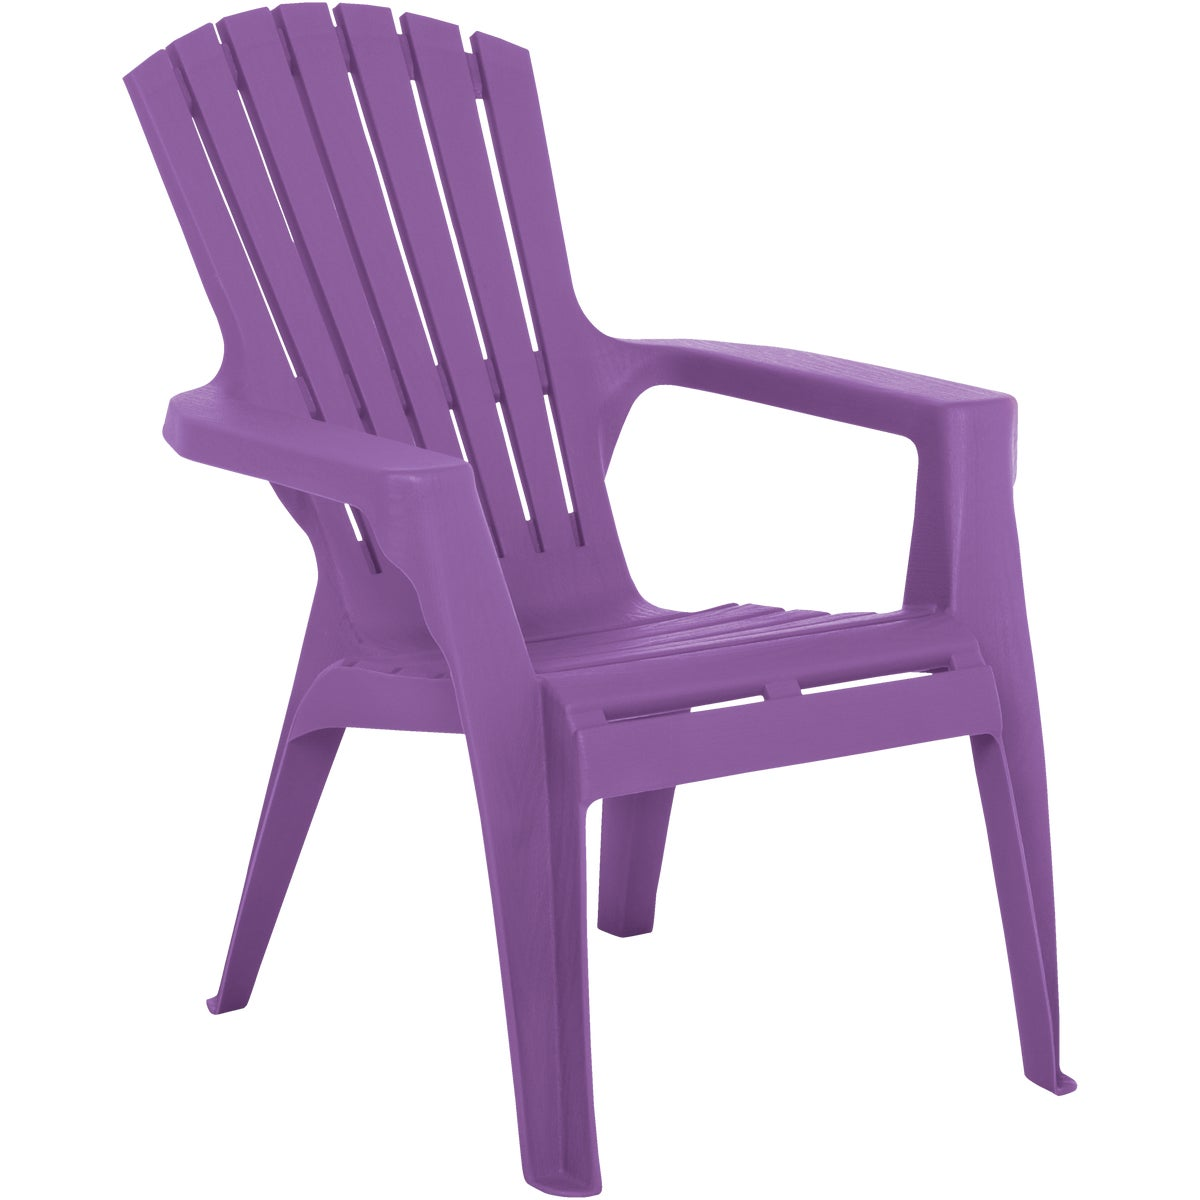 VIOLET KIDS ADIRONDACK - 8460-12-4748 by Adams Mfg Patio Furn